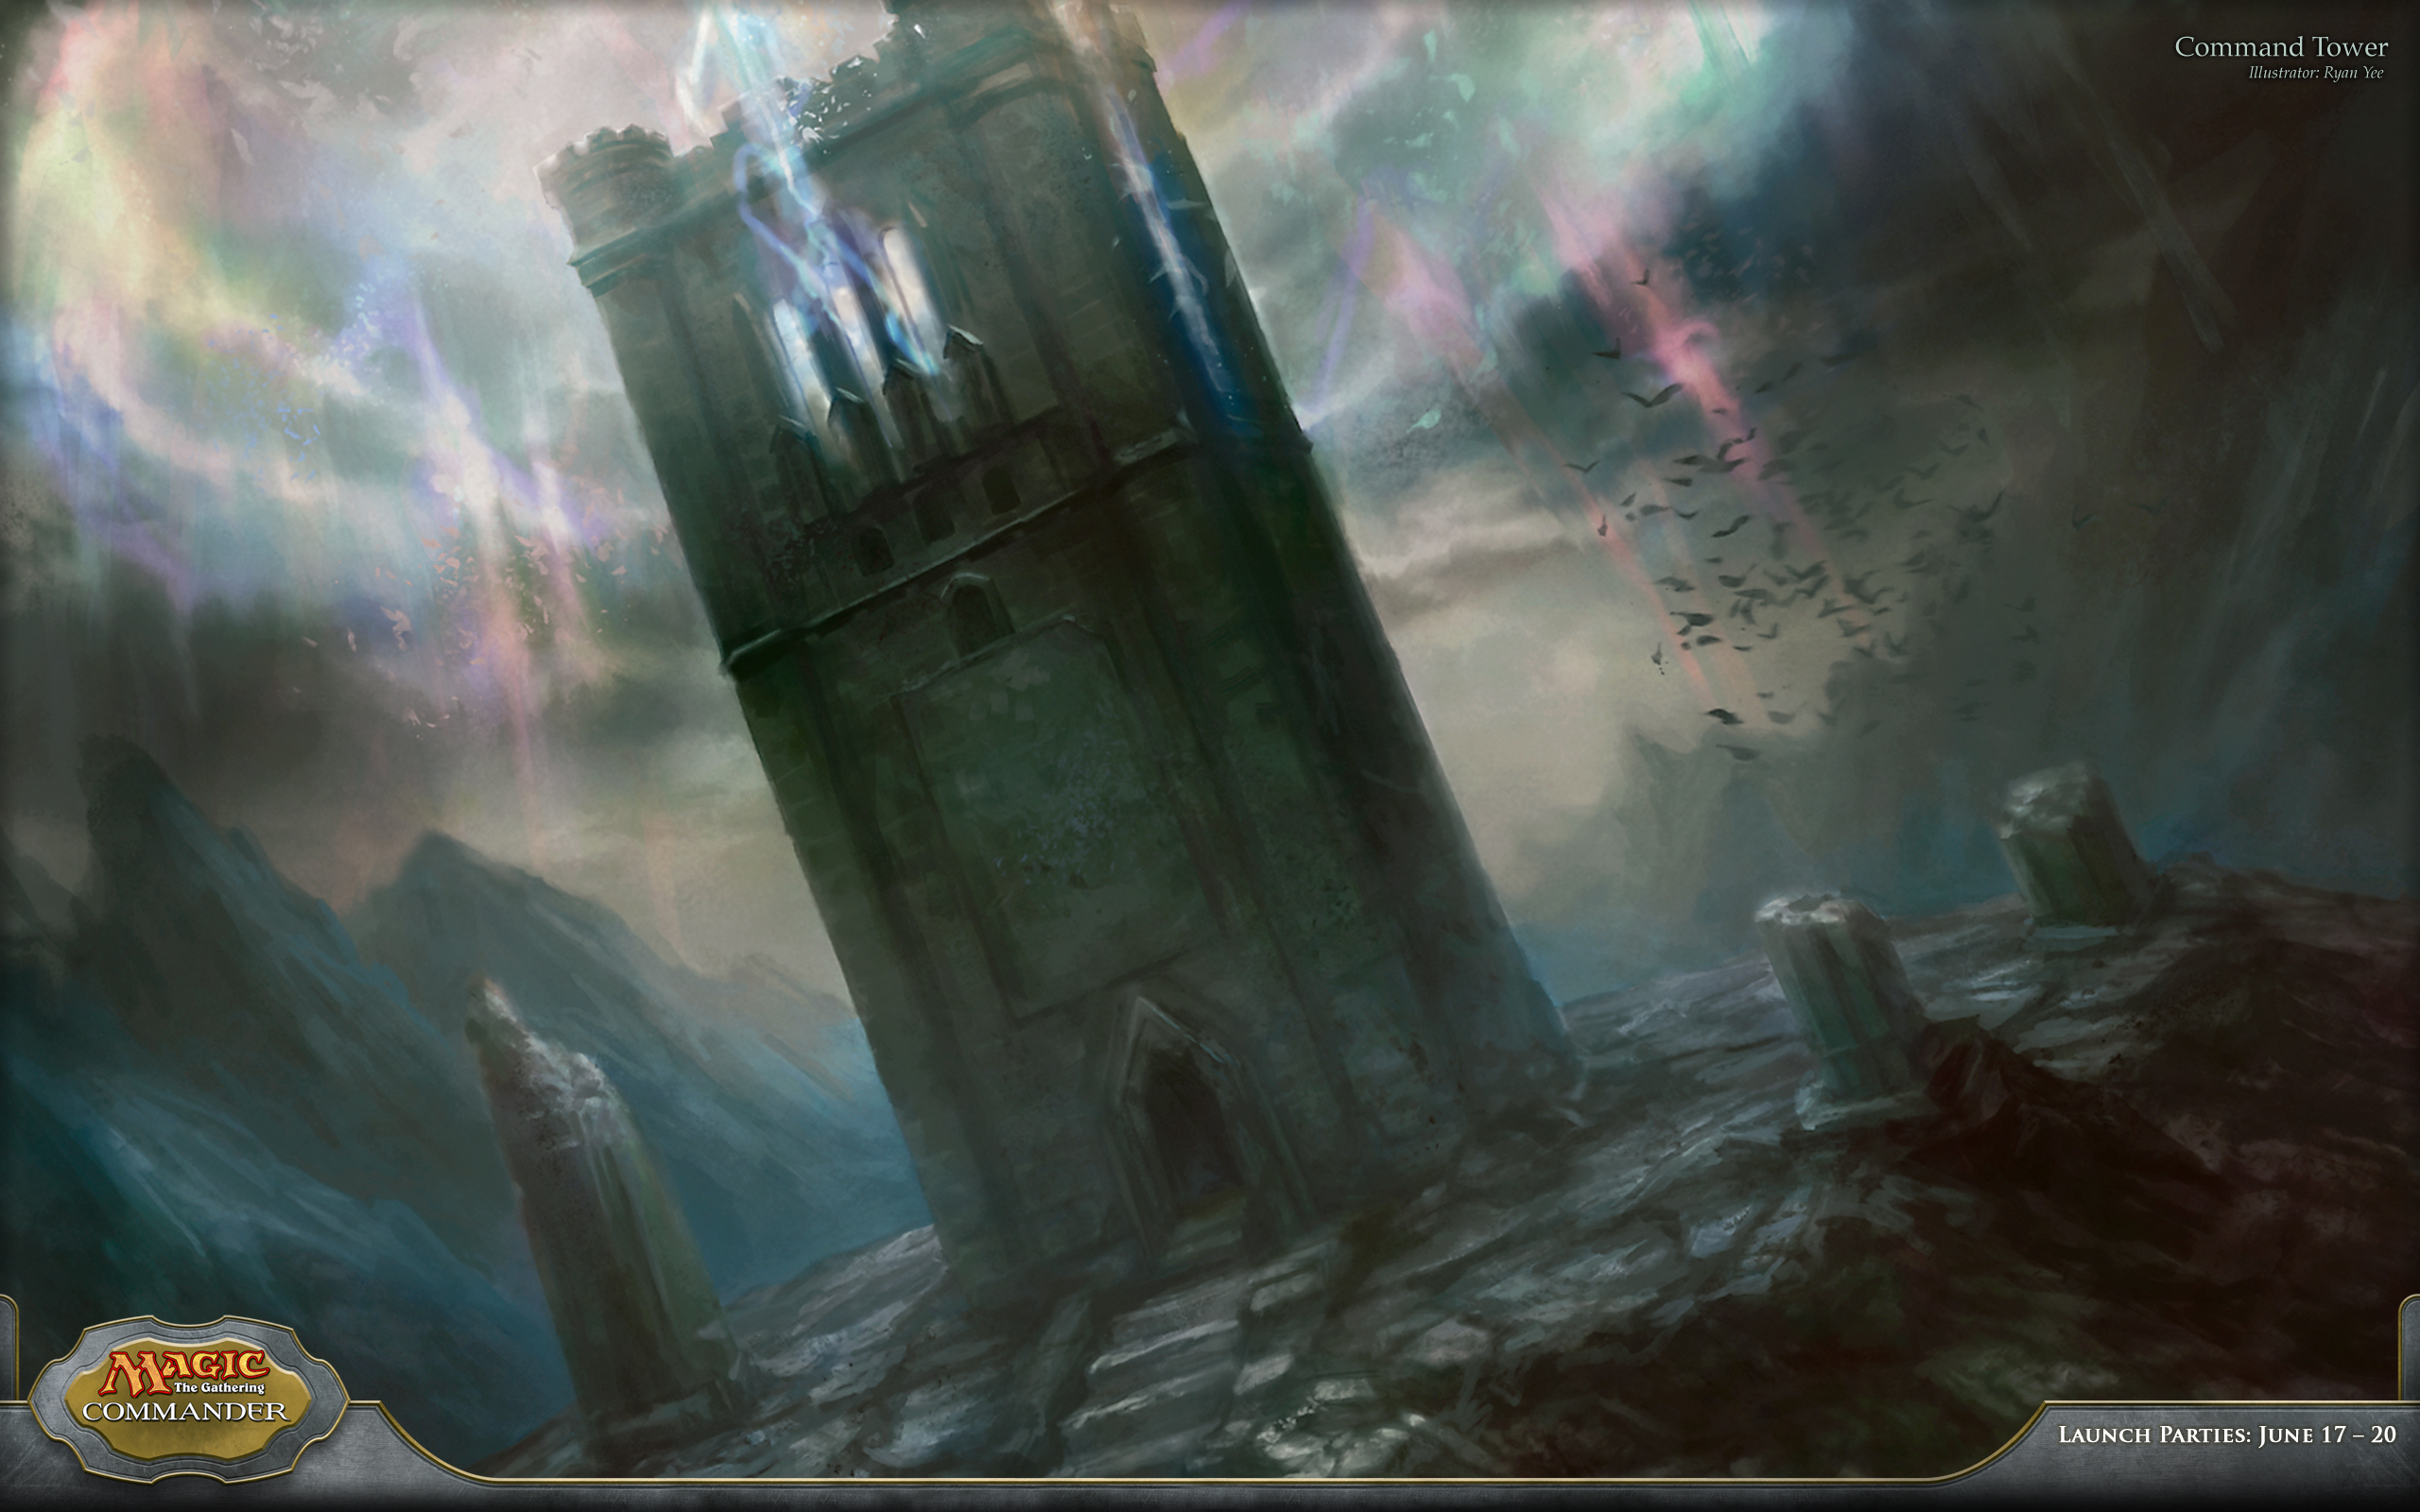 Mtg Iphone Wallpaper Wallpaper Of The Week Command Tower Magic The Gathering